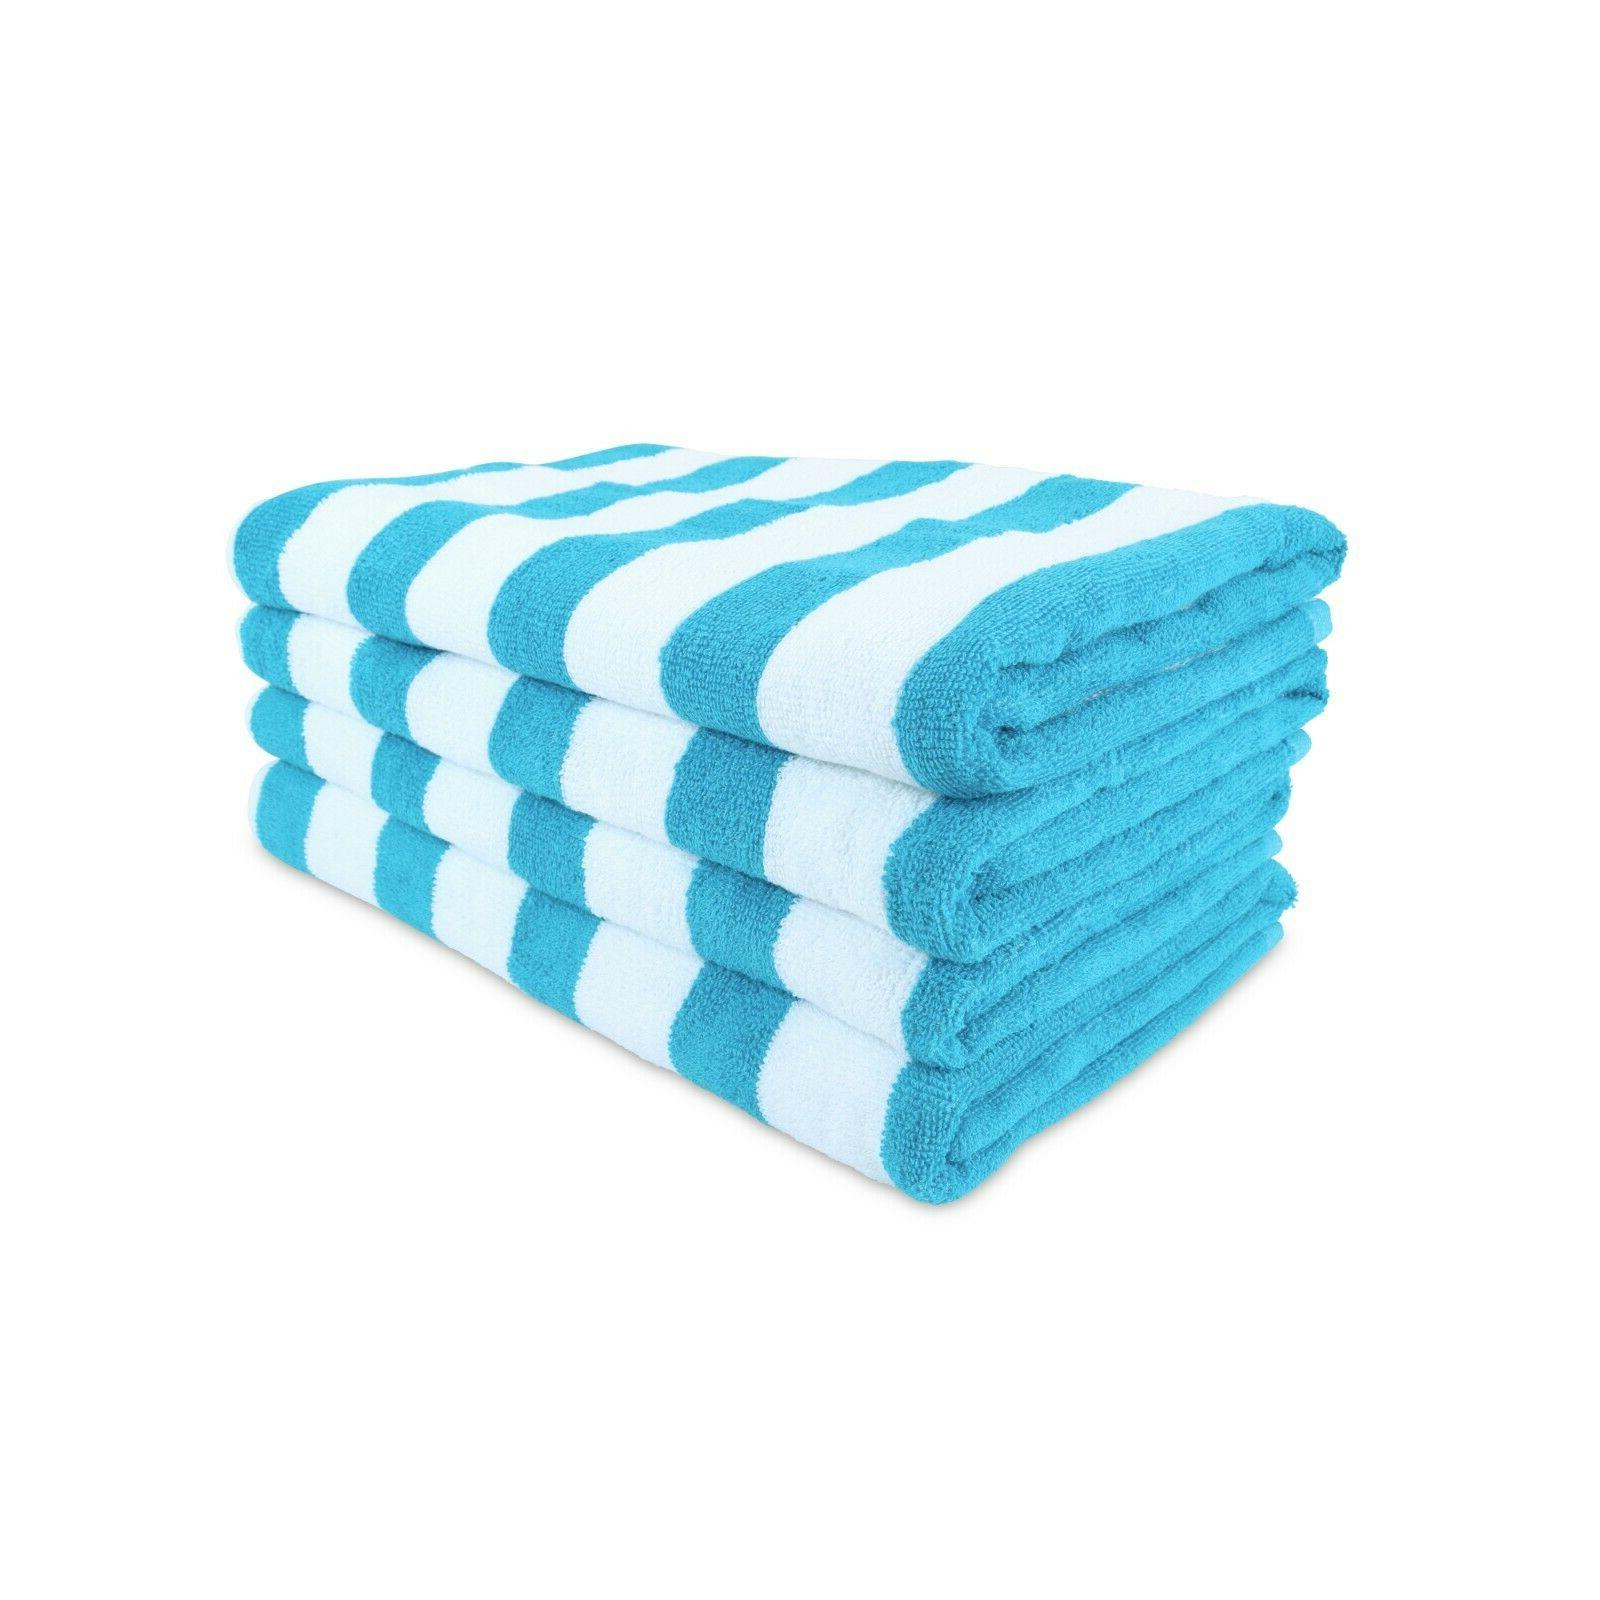 4 Pack of Cabana Beach Towels - 30 x 60 Striped Colors - Bul